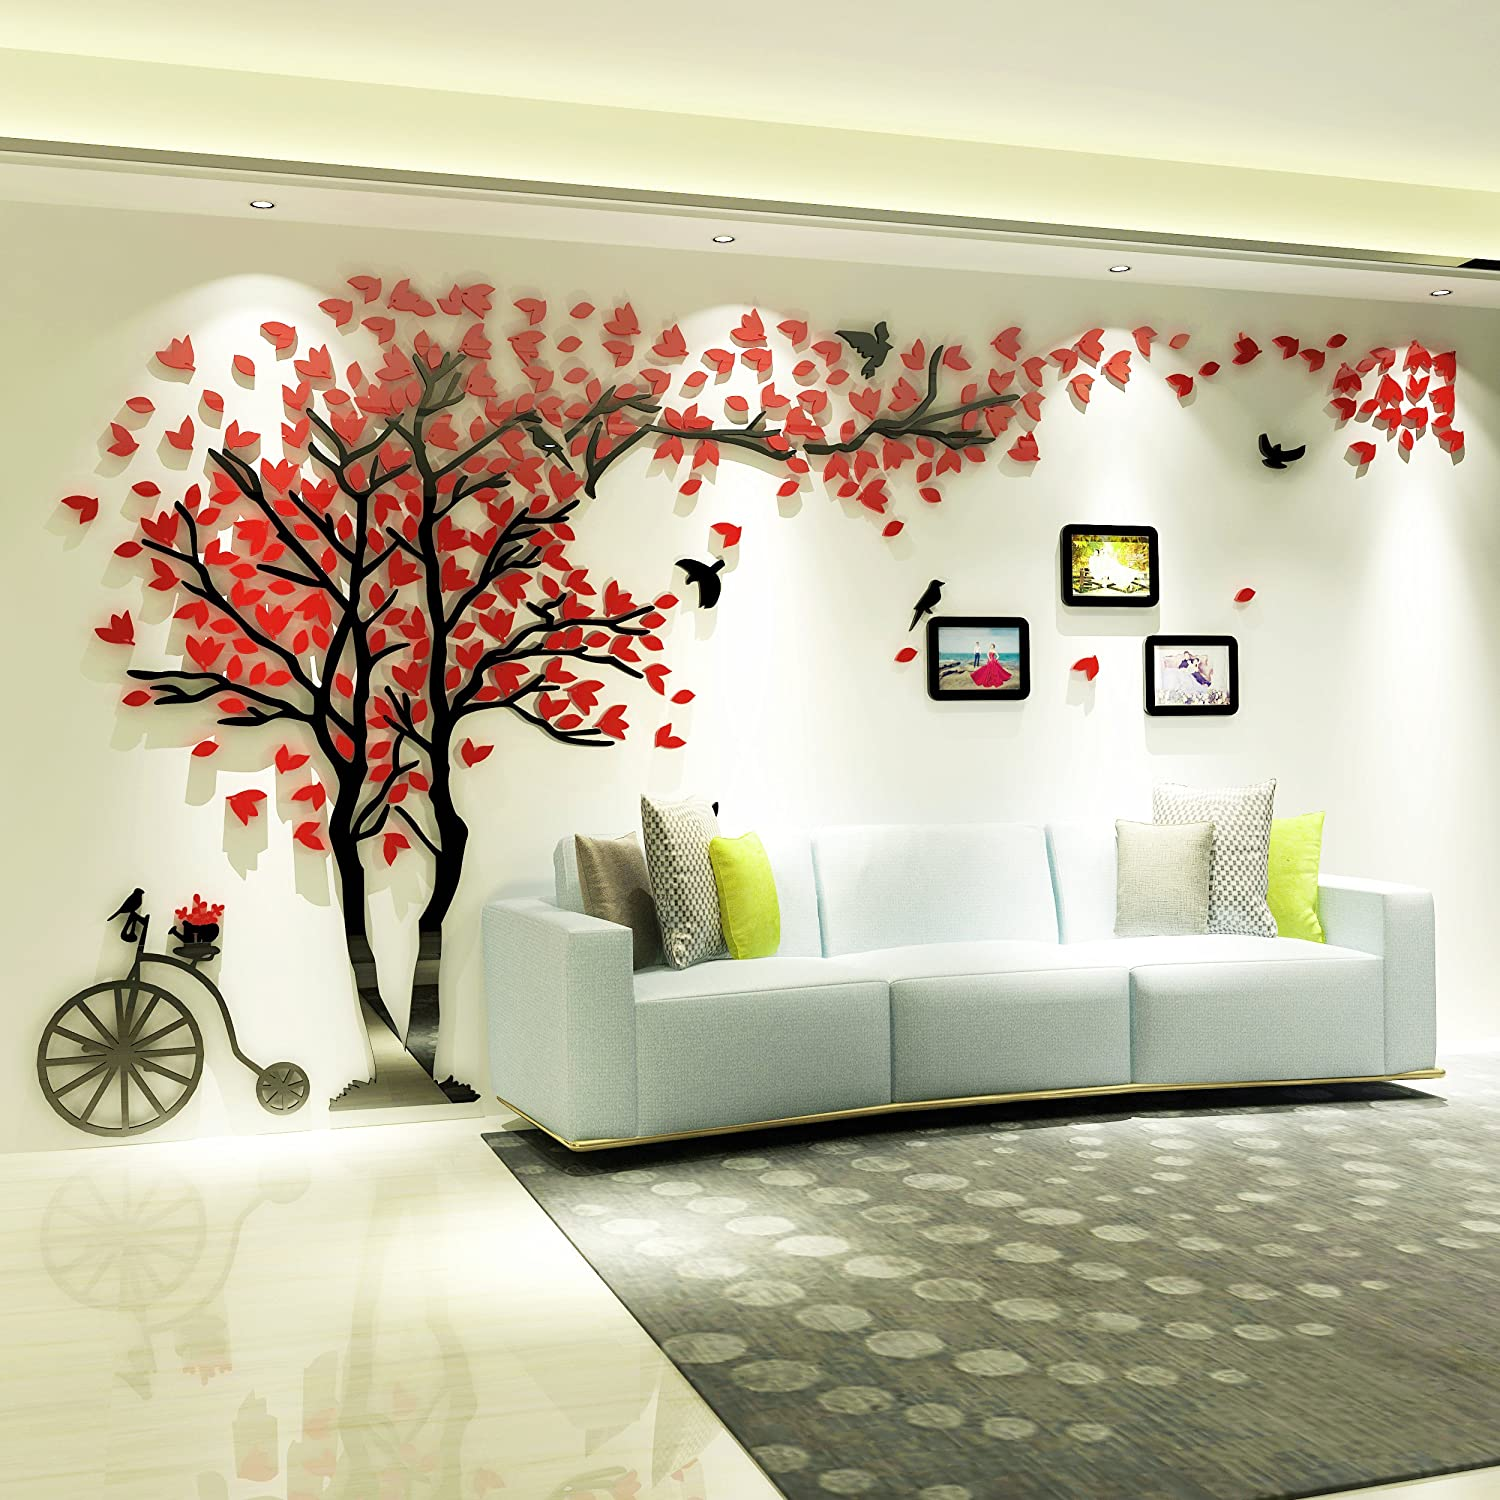 KINBEDY Acrylic 3D Tree Wall Stickers Wall Decal Easy to Install &Apply DIY Decor Sticker Home Art Decor. Red Leaves with Frames Left, Large